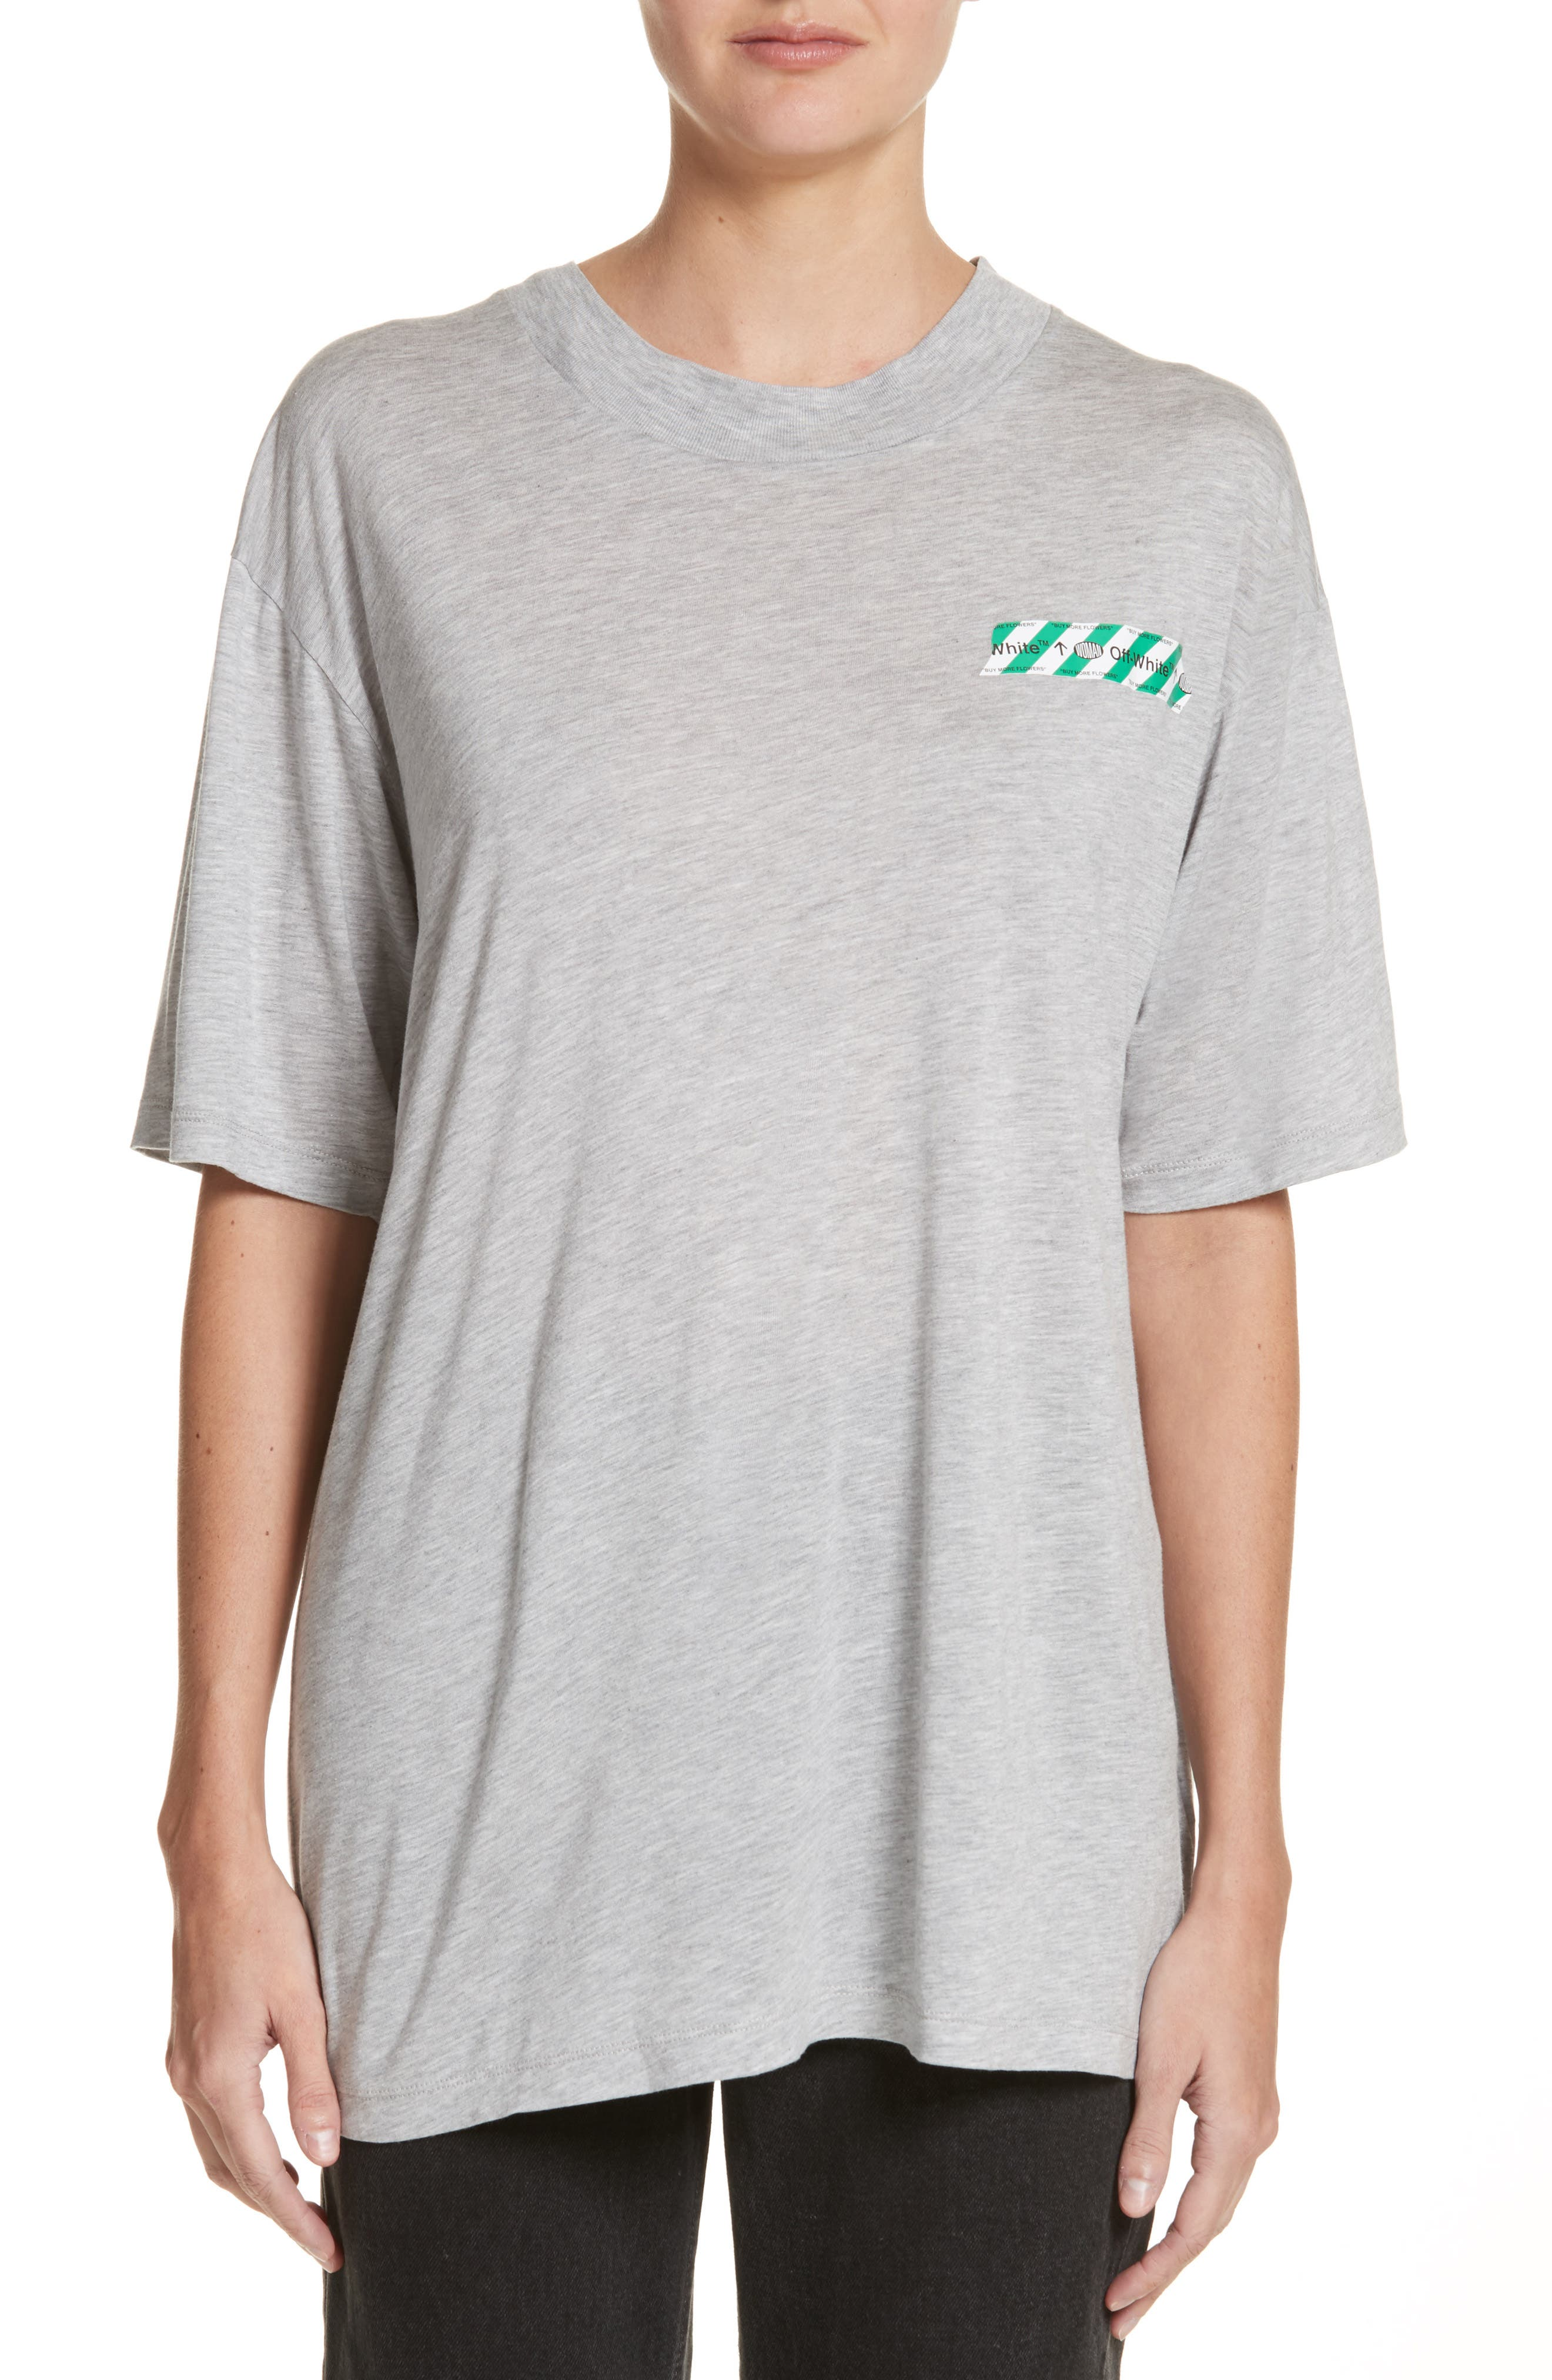 Woman Tape New over Tee,                             Main thumbnail 1, color,                             020